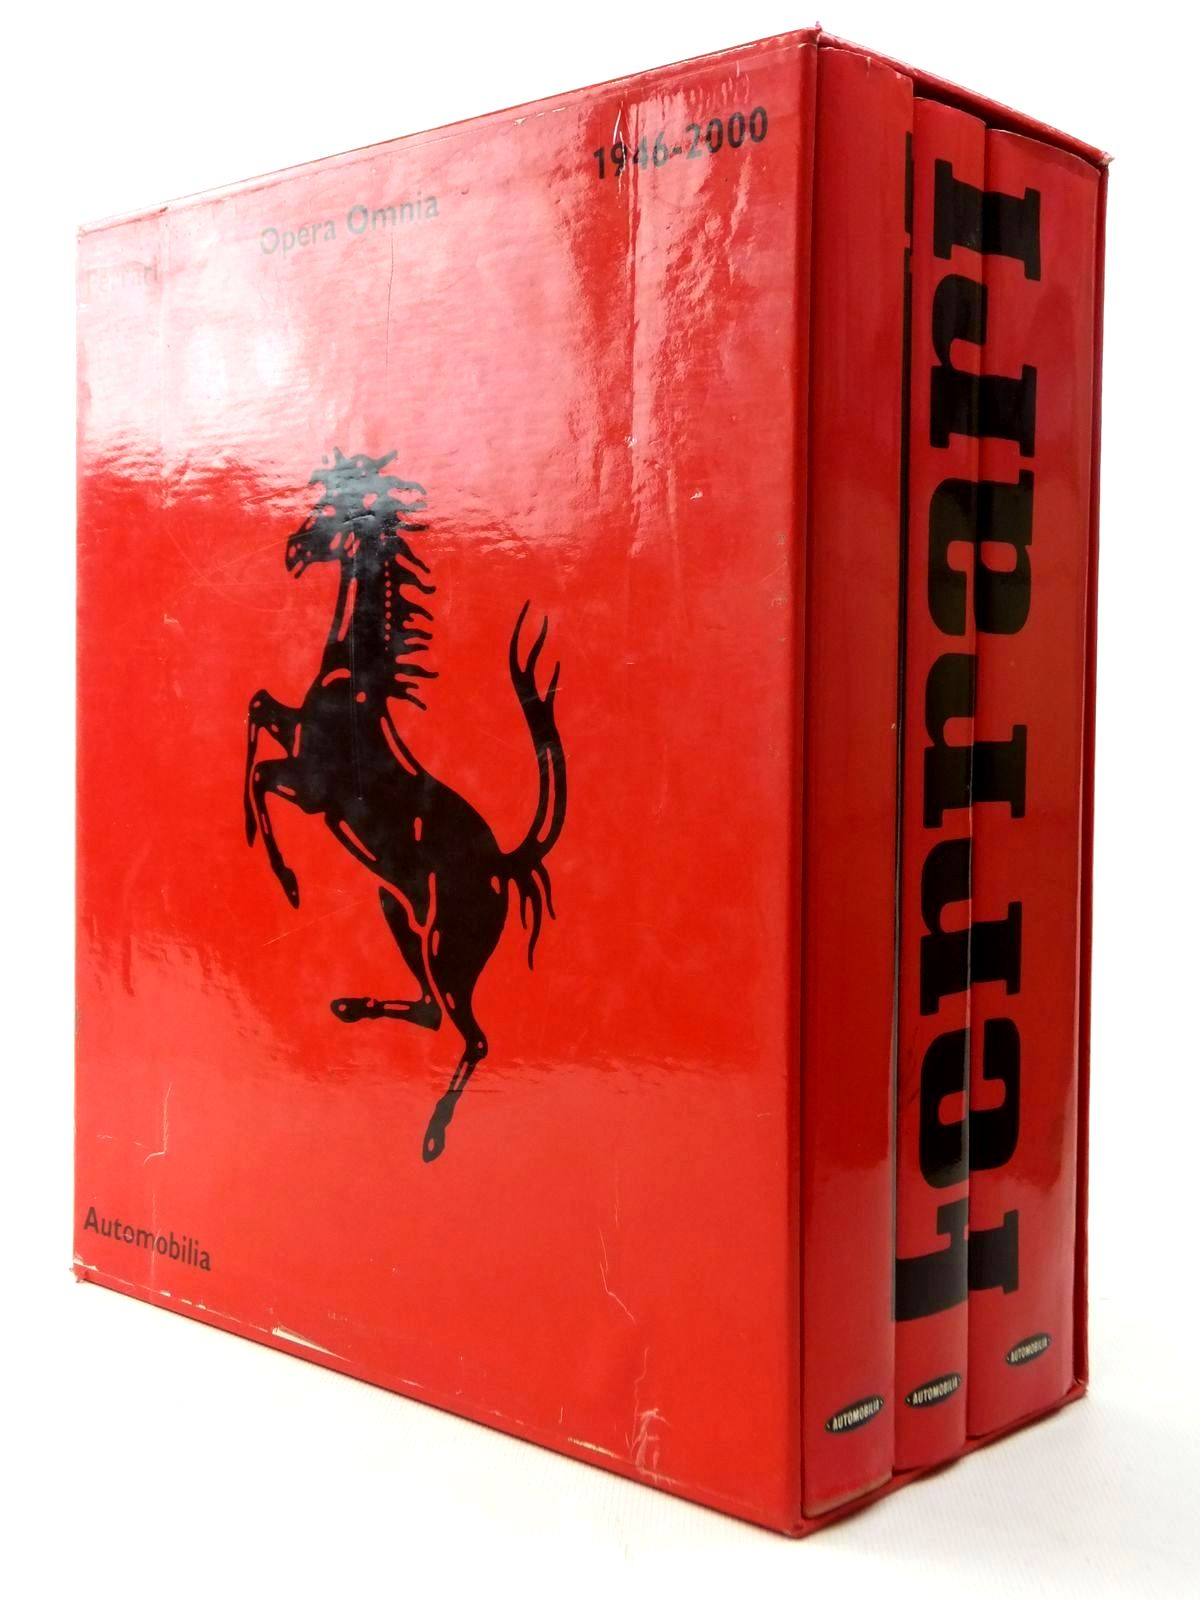 Photo of FERRARI OPERA OMNIA 1946-2000 (3 VOLUMES) published by Automobilia (STOCK CODE: 1609596)  for sale by Stella & Rose's Books